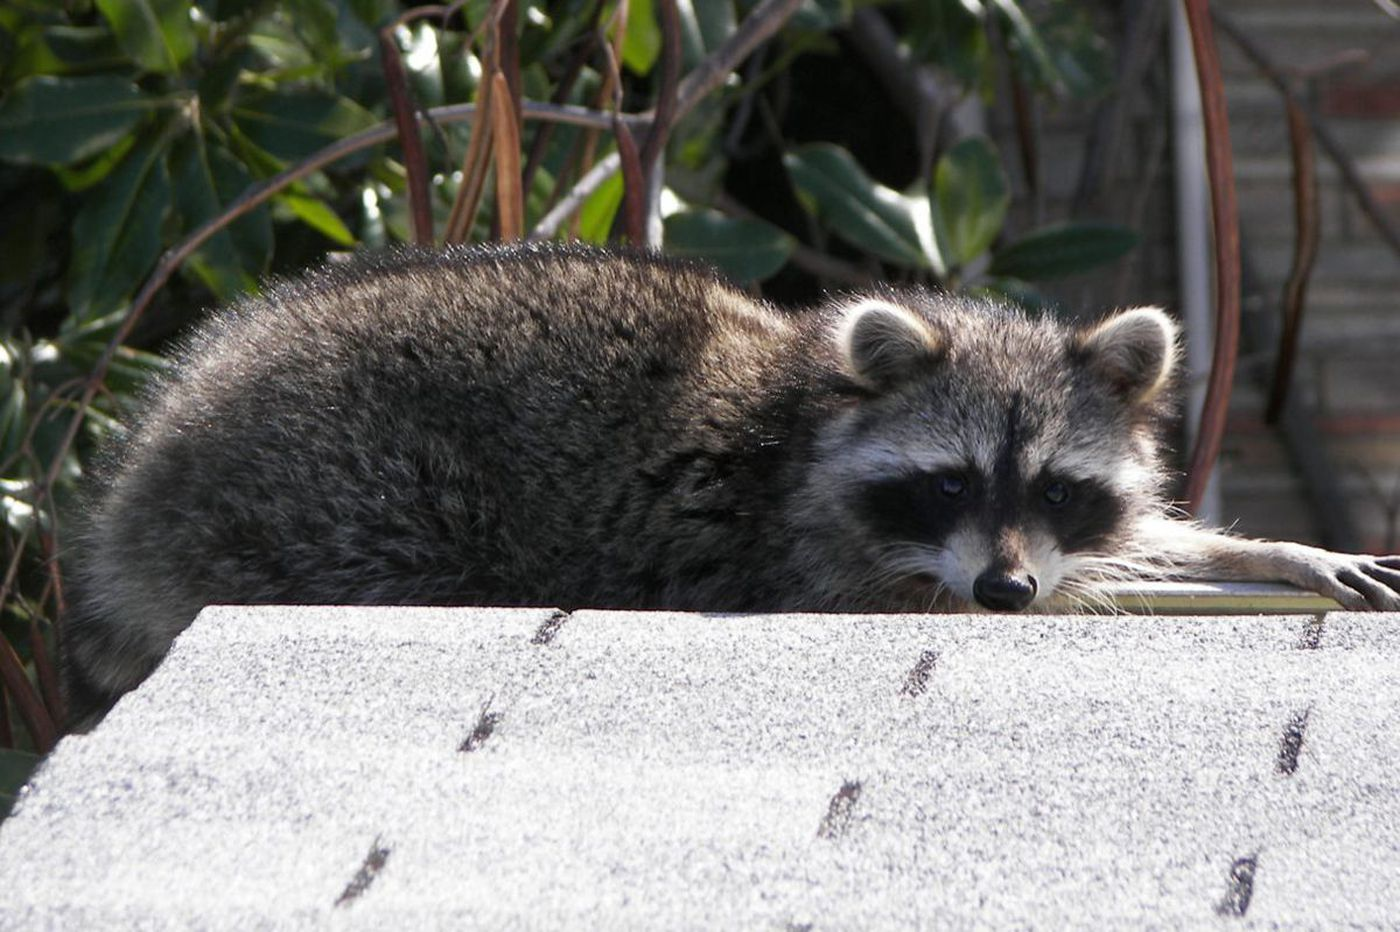 Philly is dealing with raccoons and 'aggressive' rats during the coronavirus pandemic